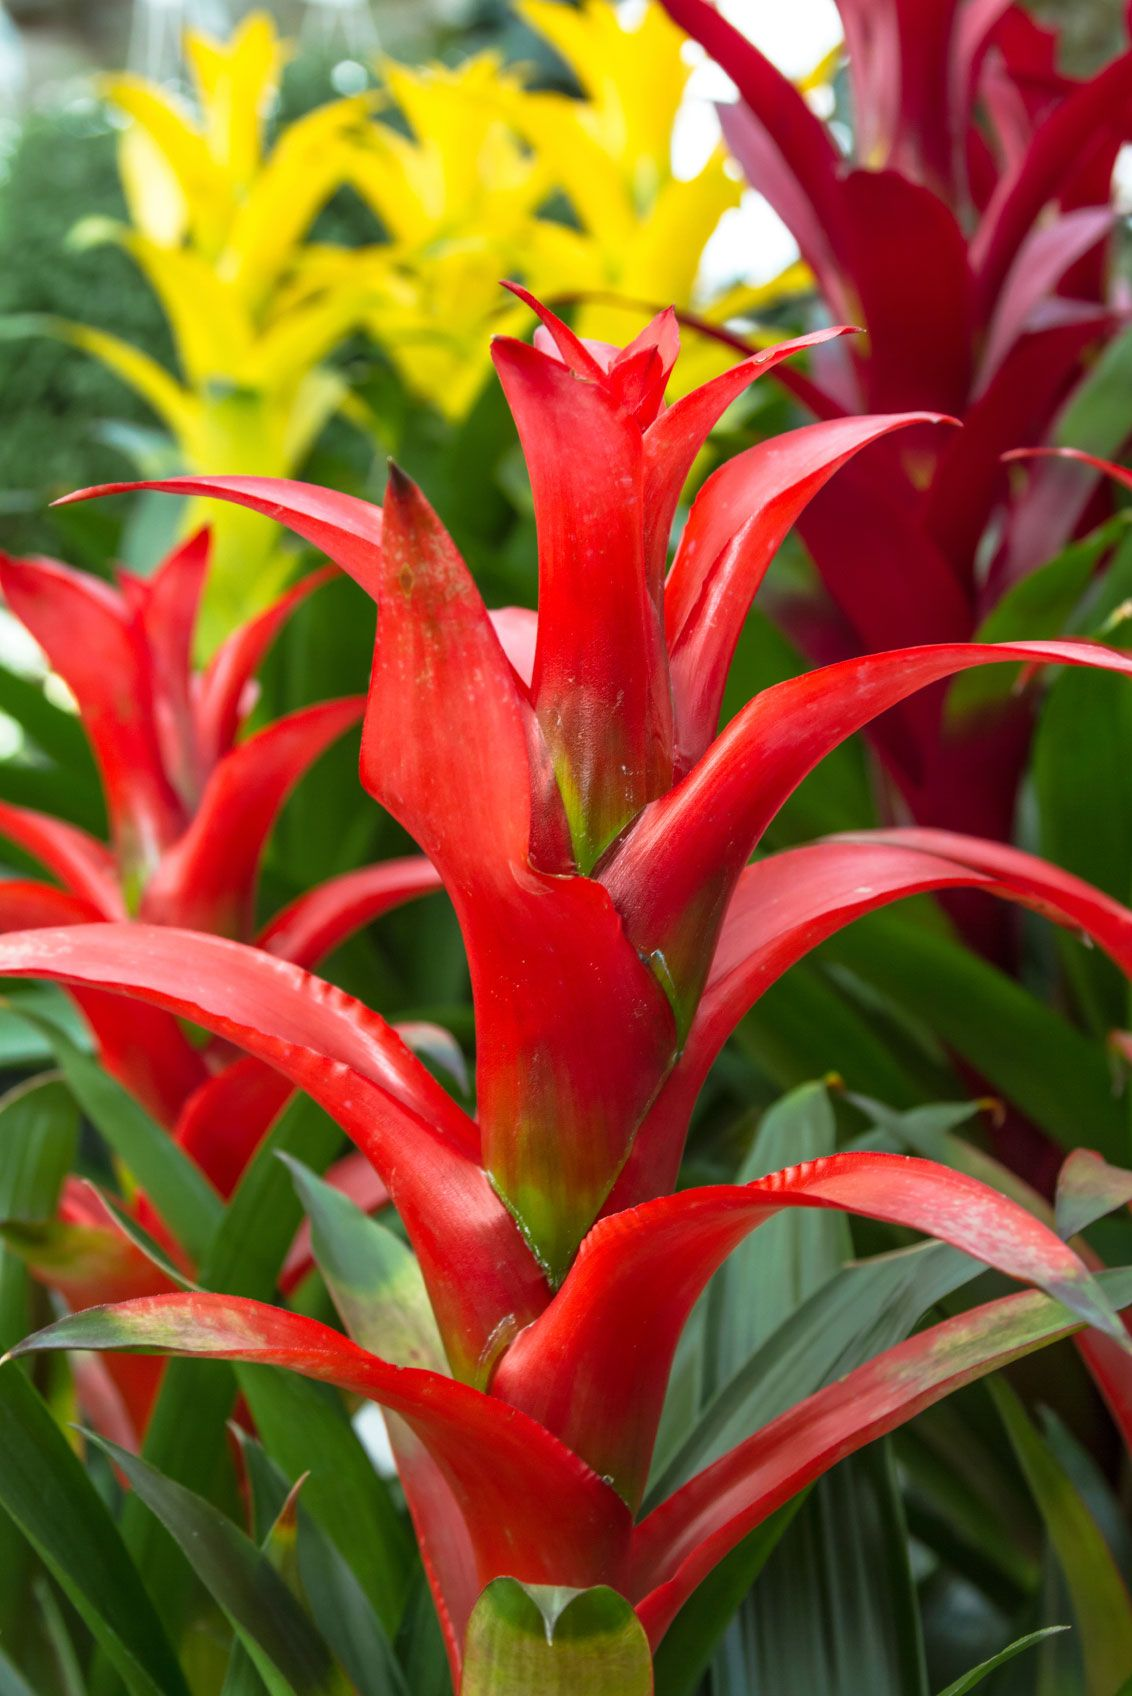 Growing A Bromeliad And How To Care For A Bromeliad Plant